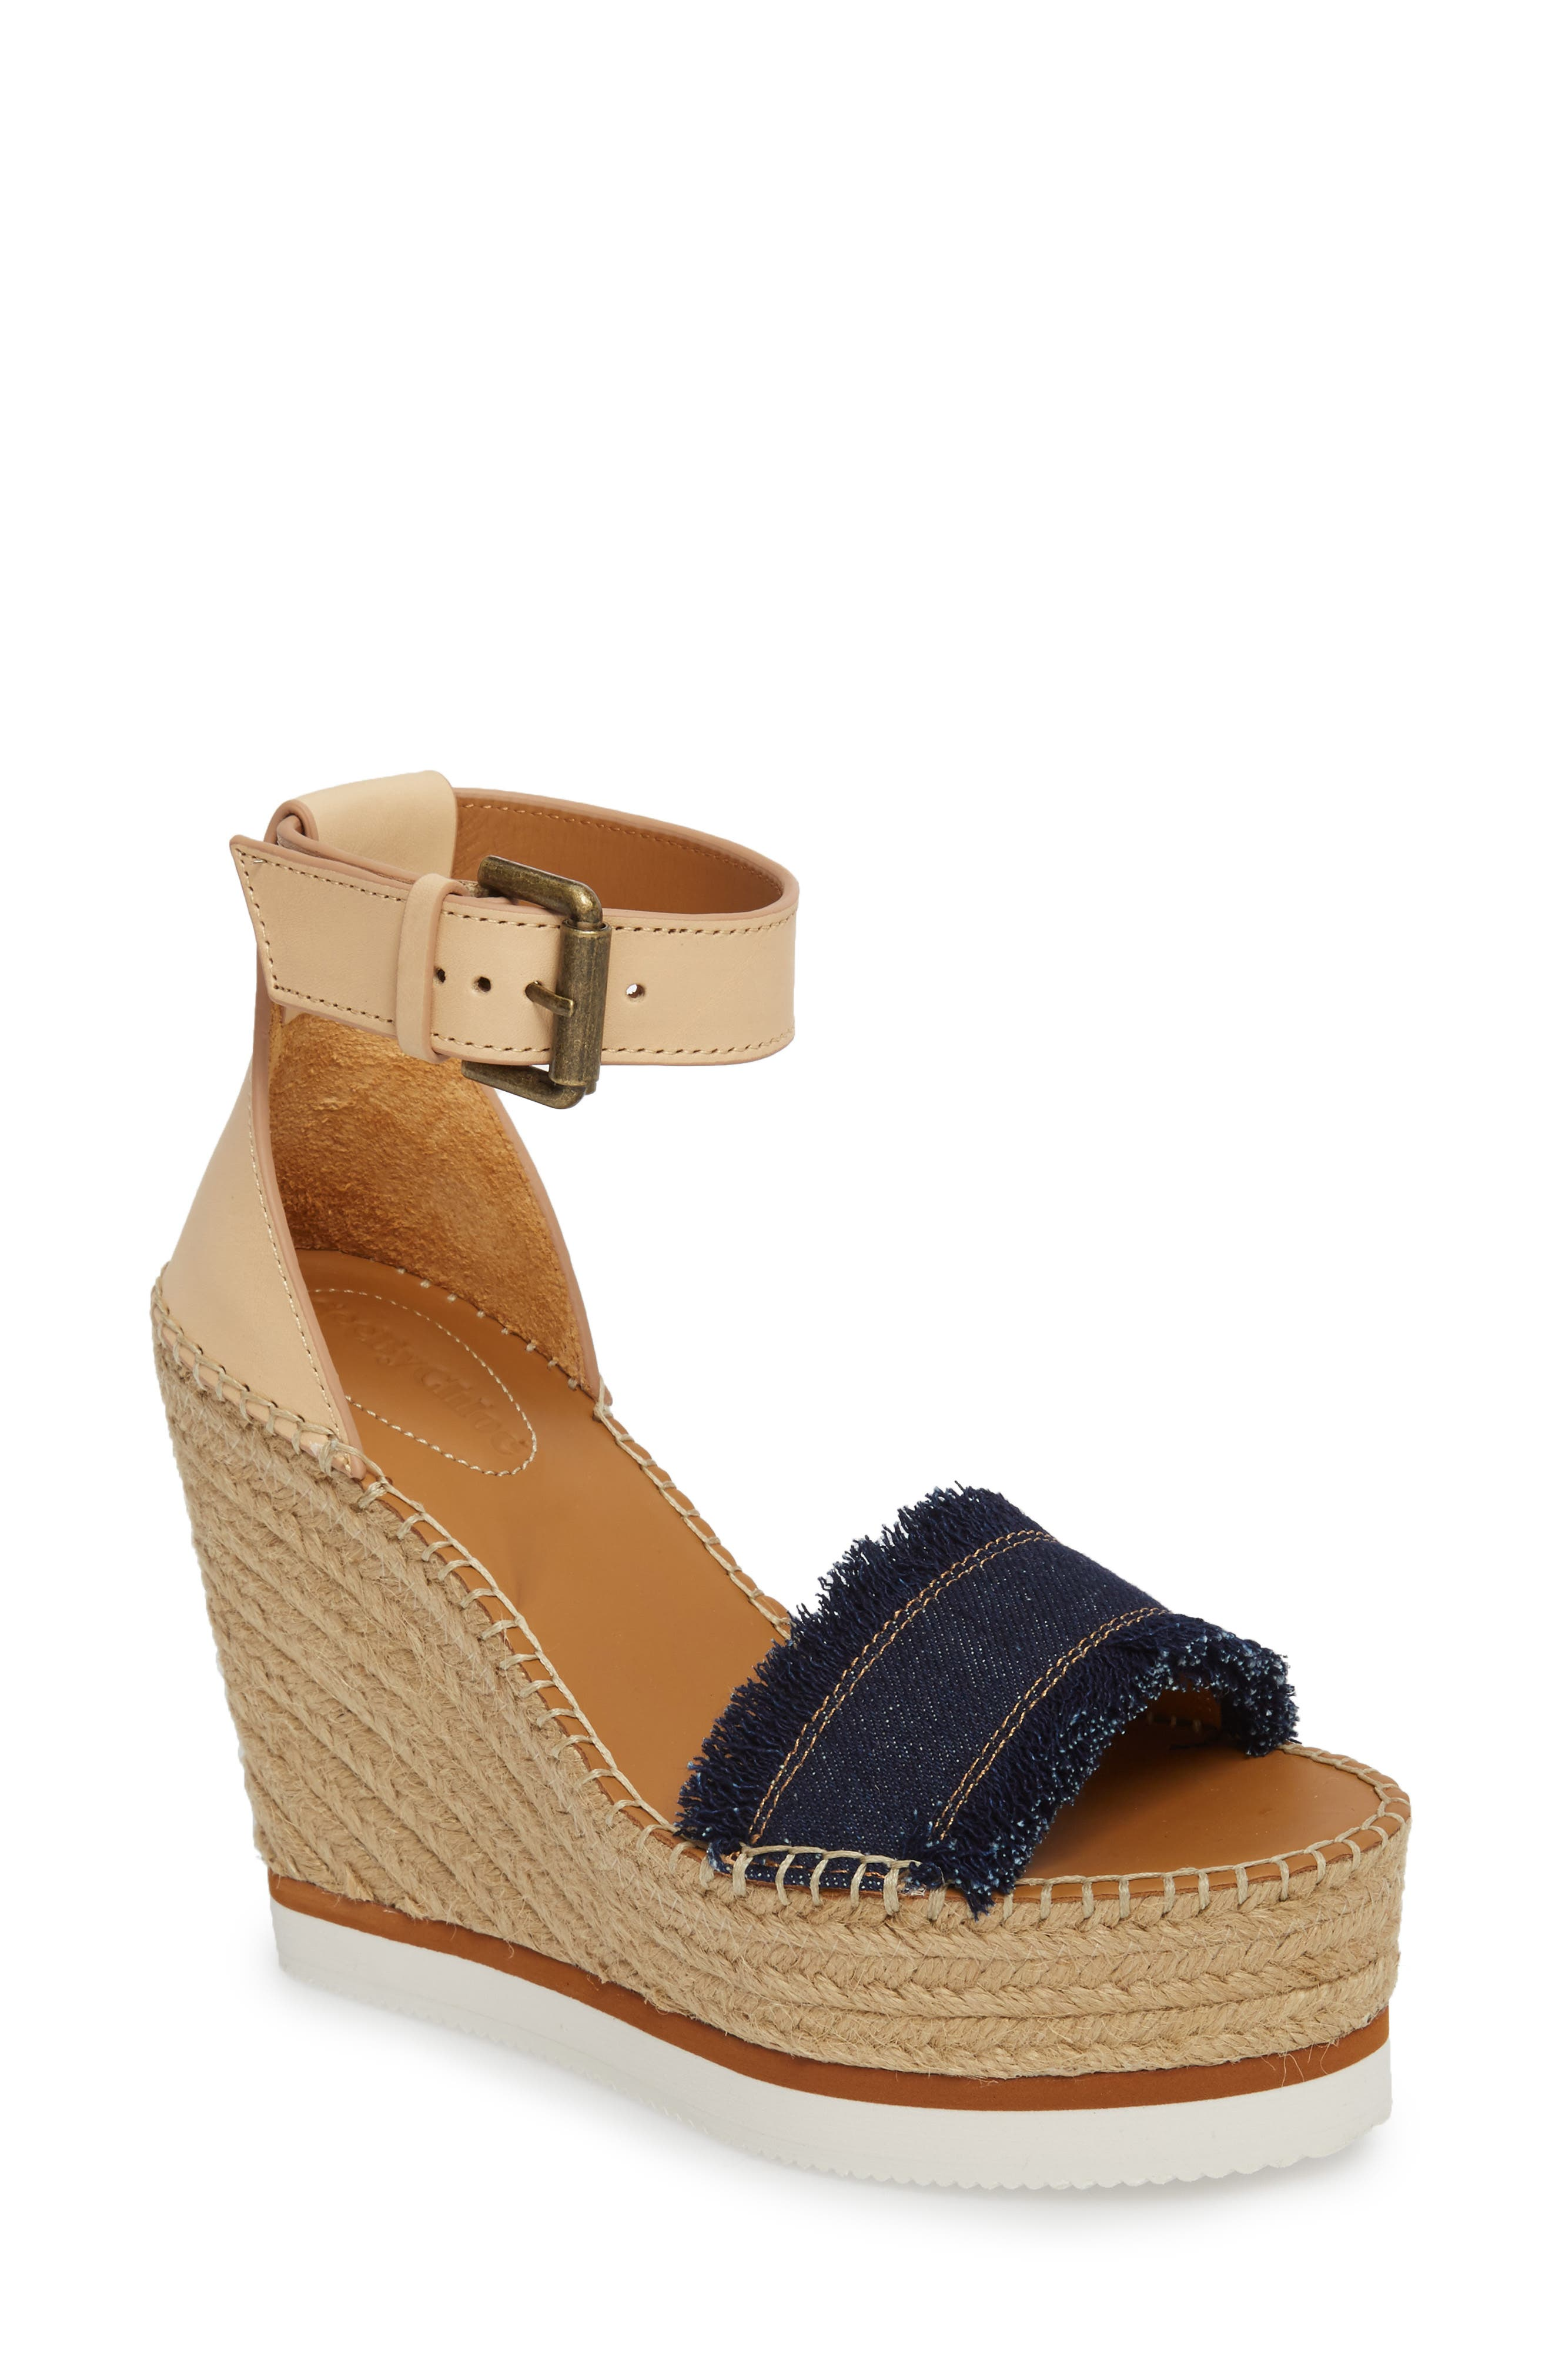 Main Image - See by Chloé 'Glyn' Espadrille Wedge Sandal (Women)